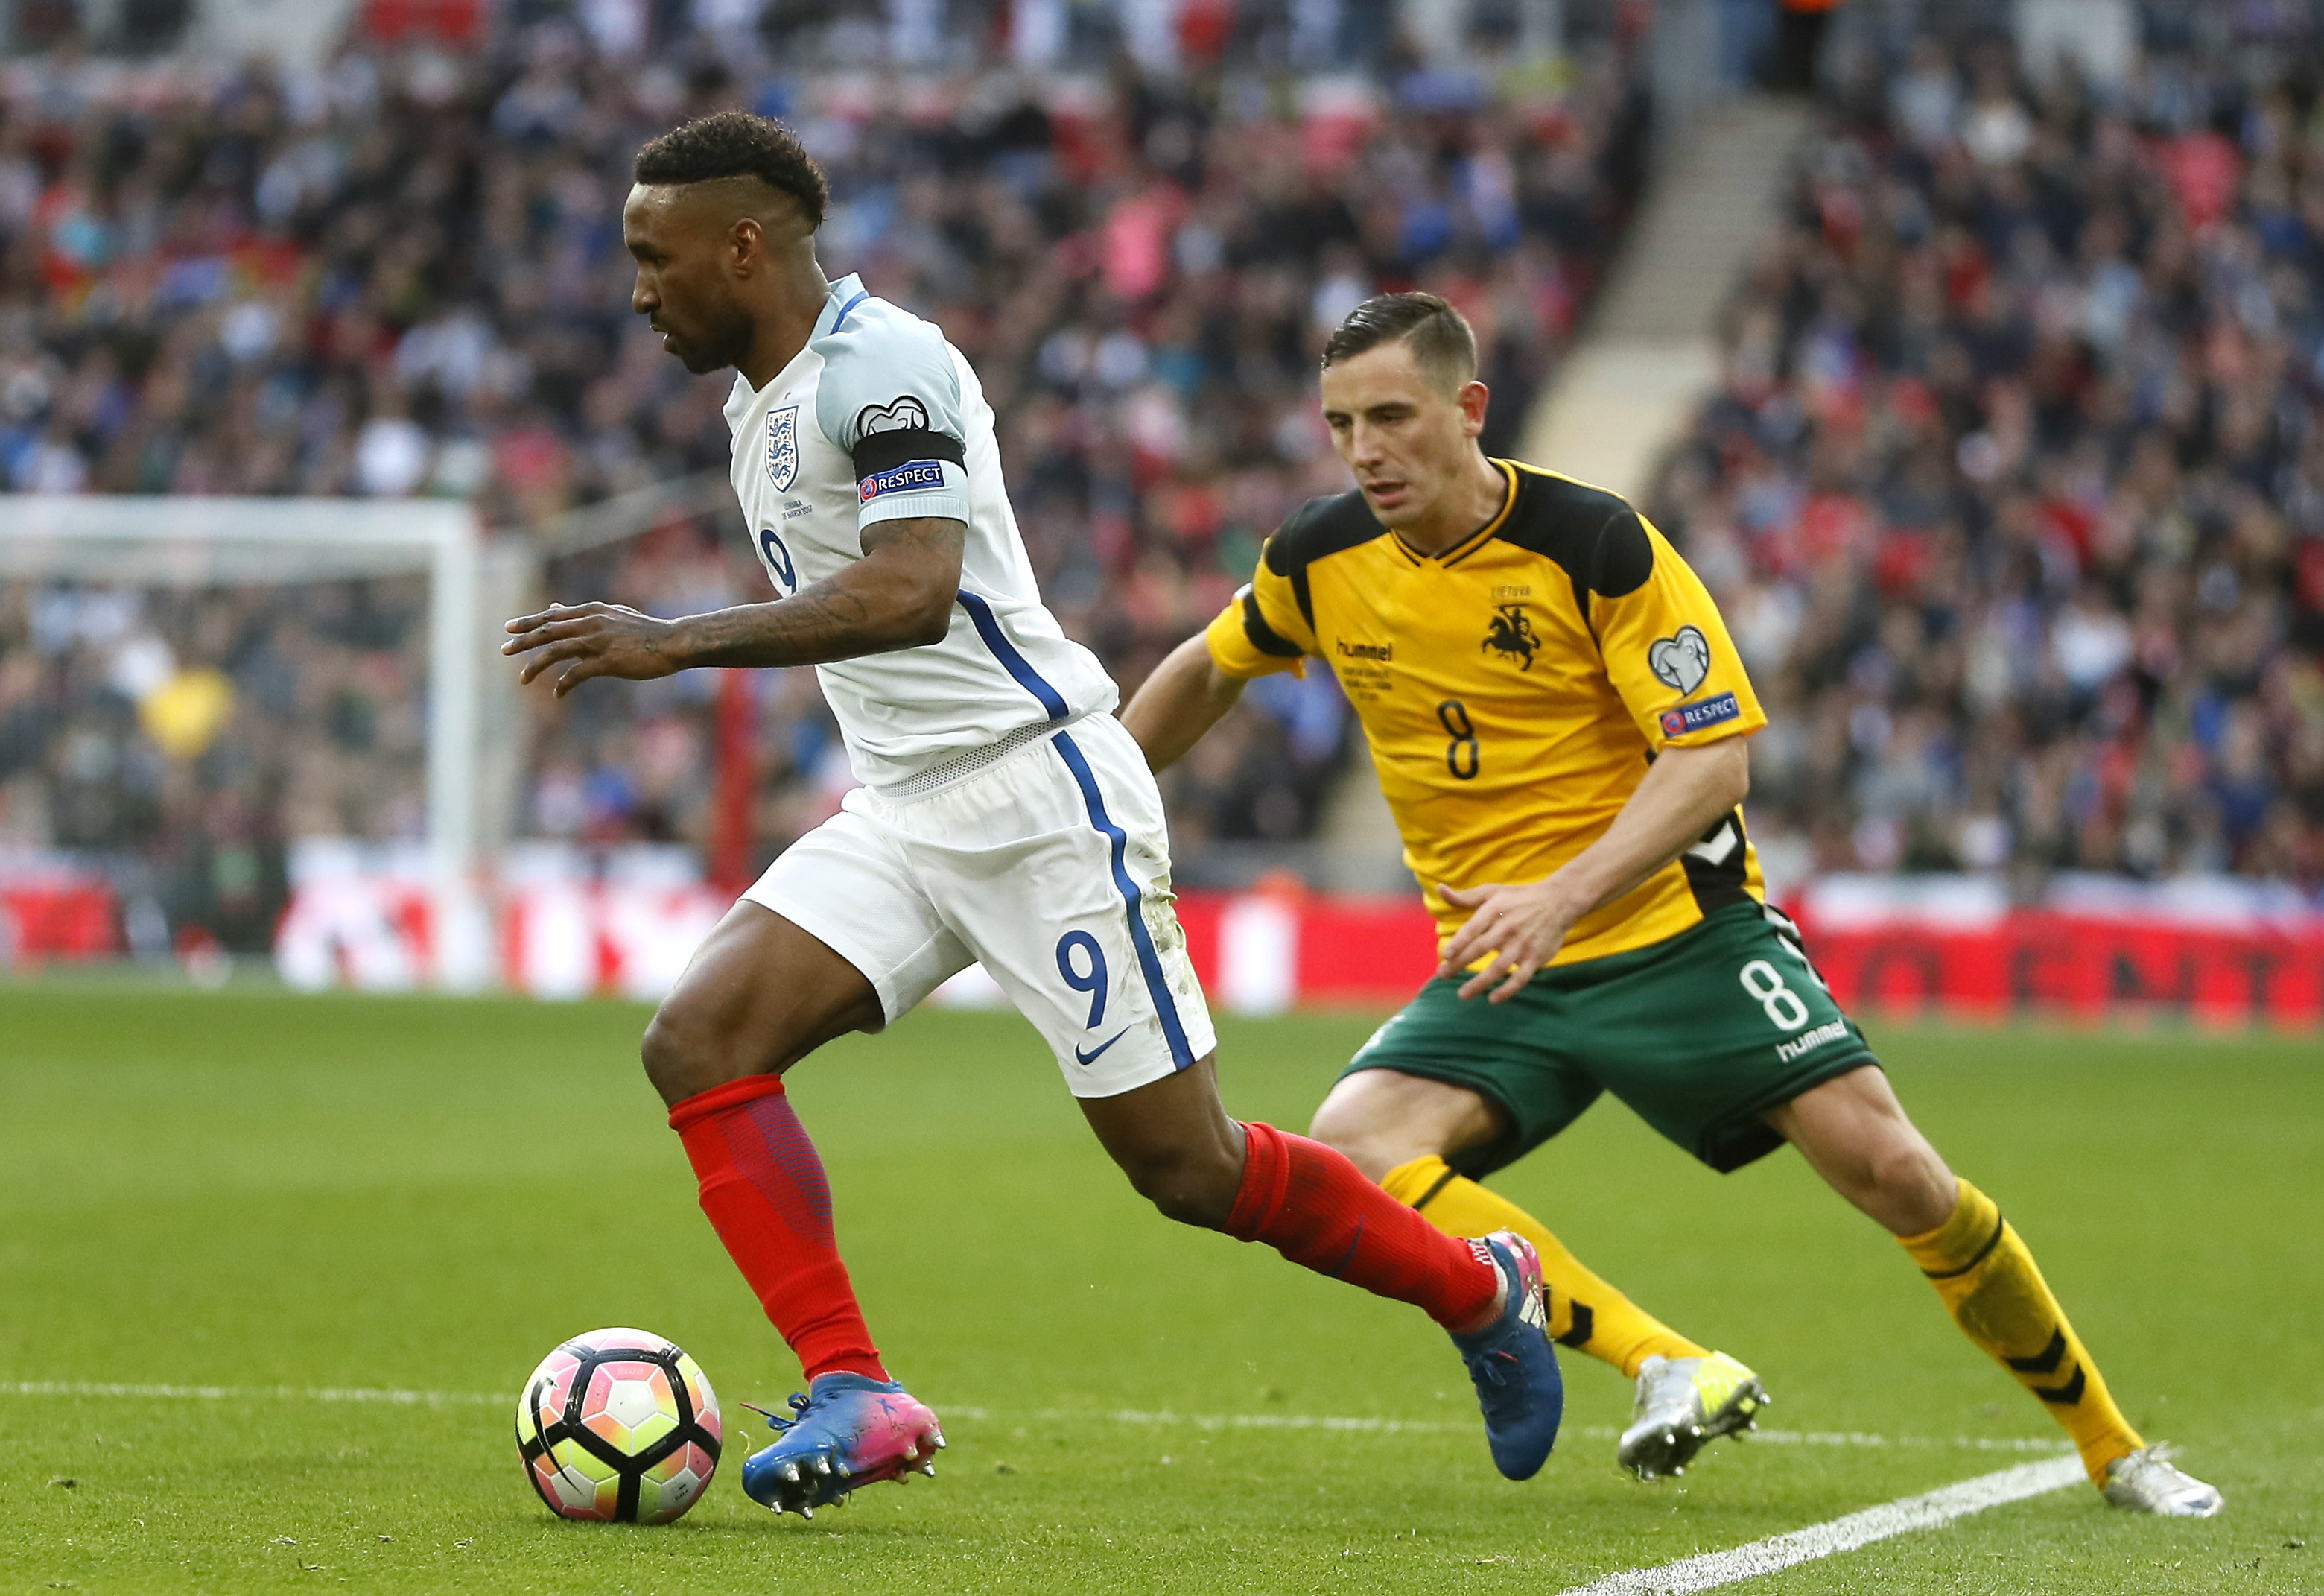 England's Jermain Defoe, left, moves away from Lithuania's Egidijus Vaitkunas, right, during the World Cup Group F qualifying match at Wembley Stadium in London, Sunday, March 26. (AP Photo/Kirsty Wigglesworth)